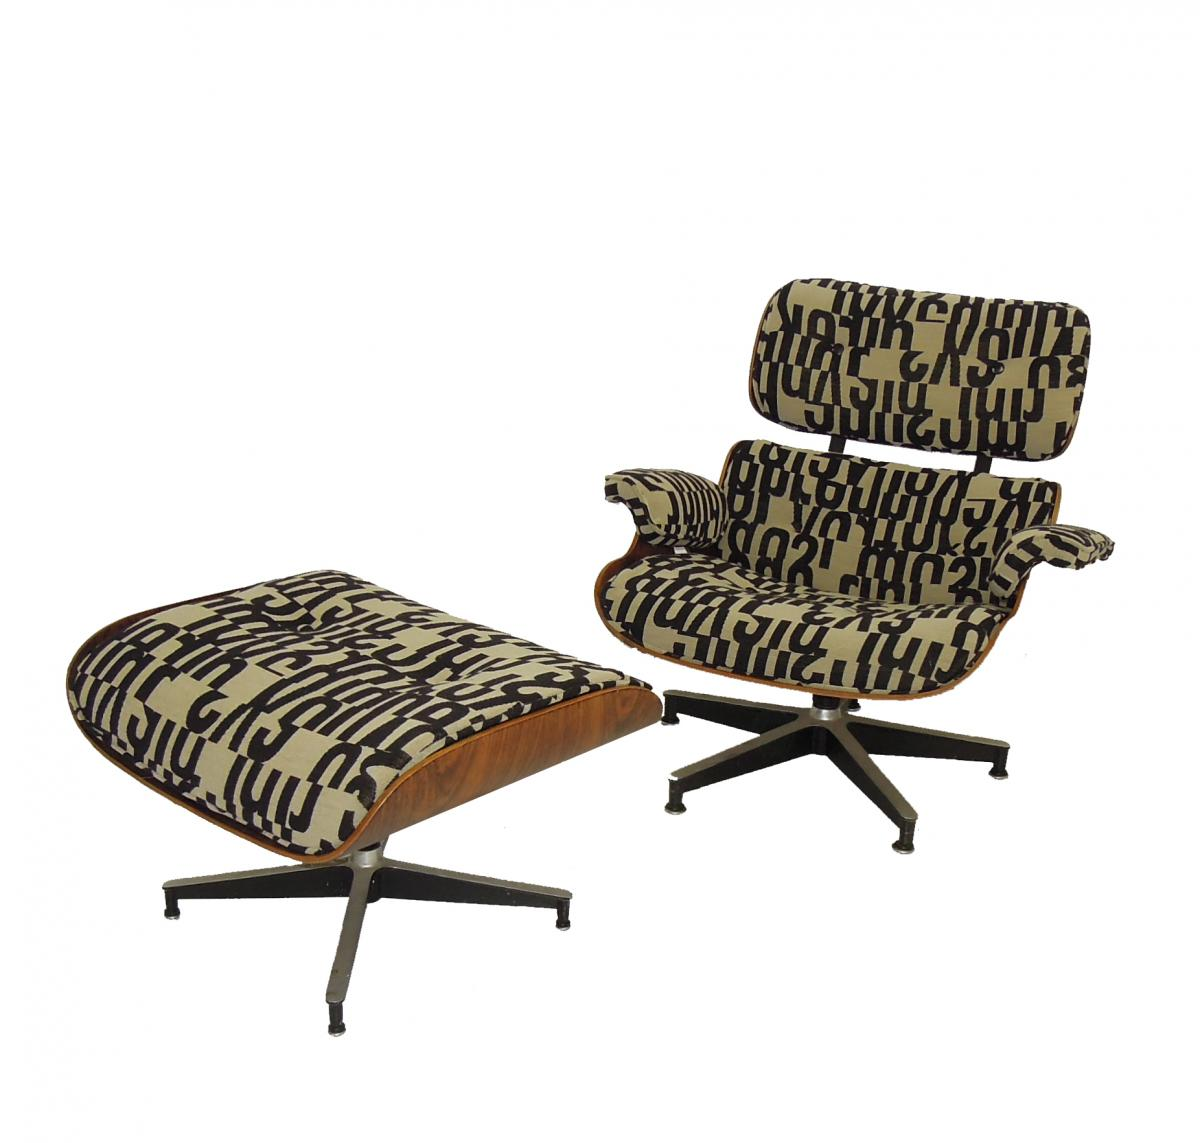 where to get chairs reupholstered folding chair bed lazada nyc eames lounge 670 and ottoman 671 reupholstery in brooklyn reupholster maharam fabric mod